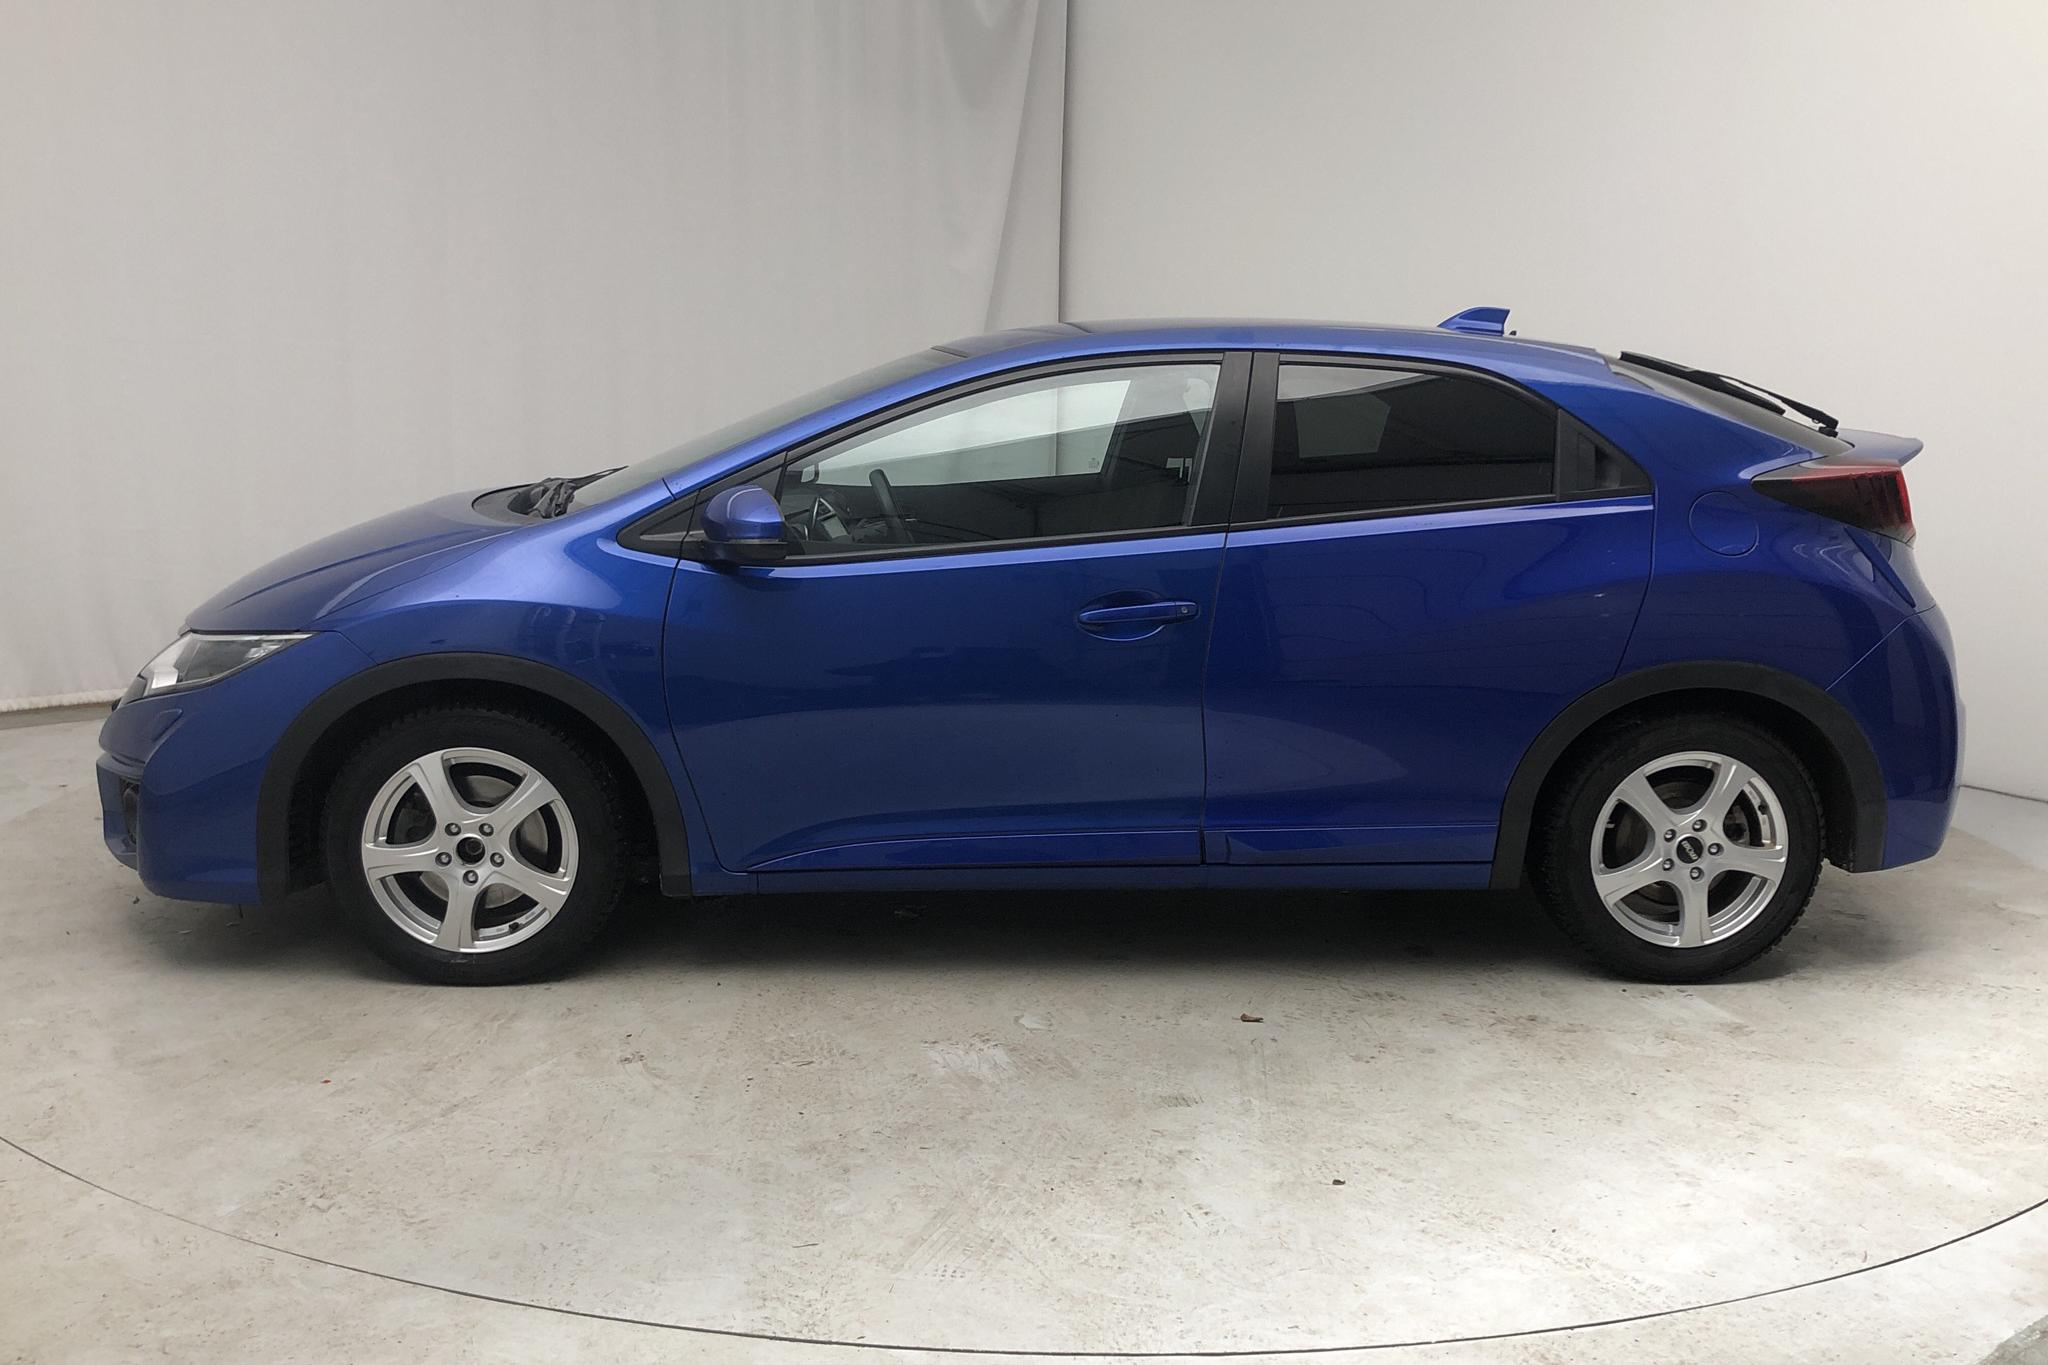 Honda Civic 1.6 i-DTEC 5dr (120hk) - 57 800 km - Manual - blue - 2015